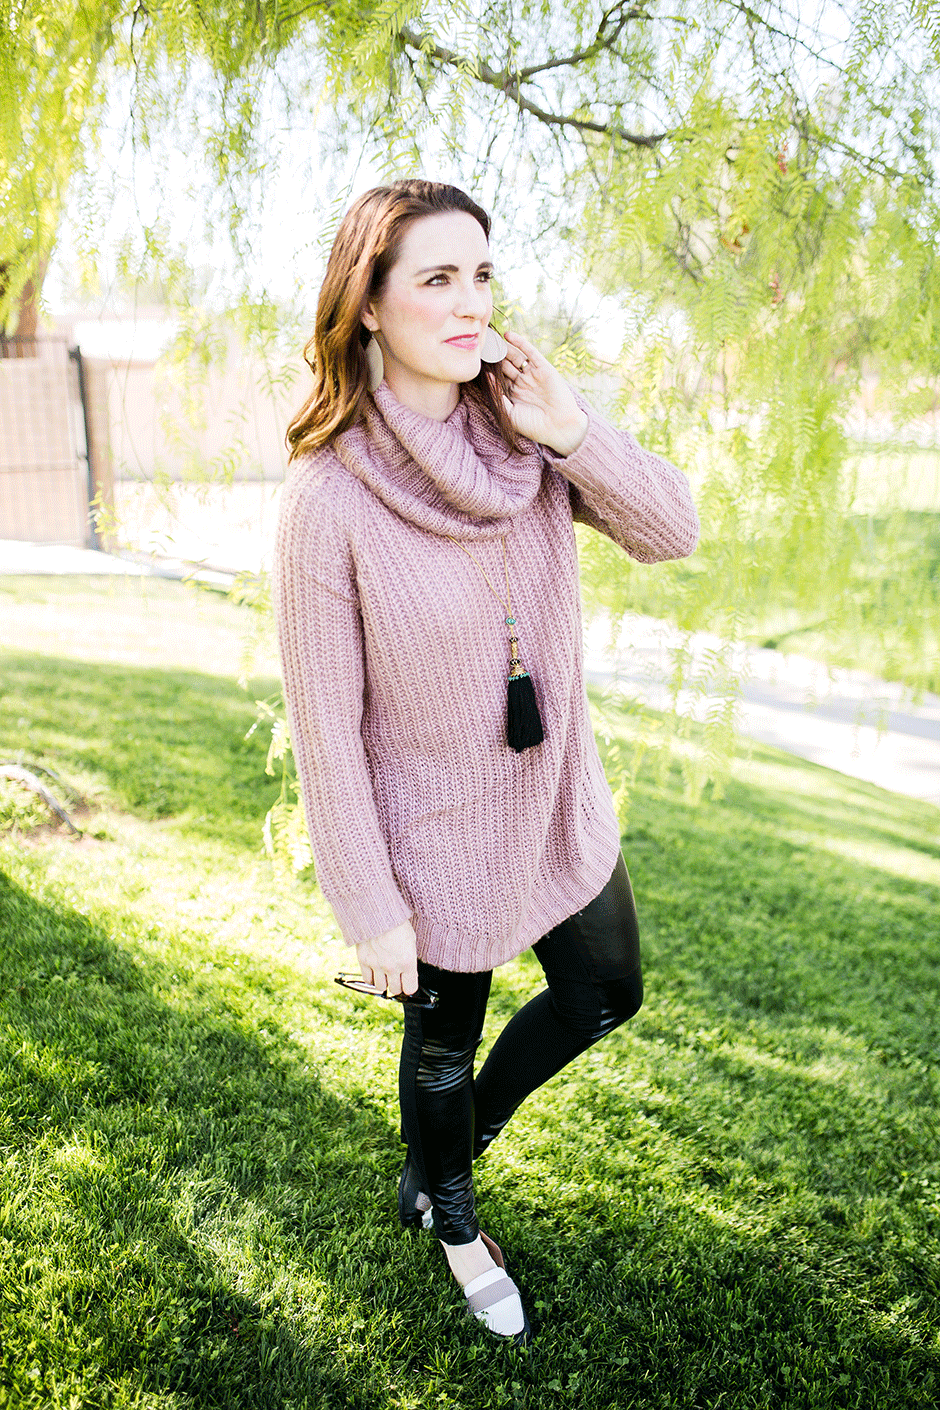 Mom-friendly style: leggings and tunic make a cute daily outfit without sacrificing comfort.